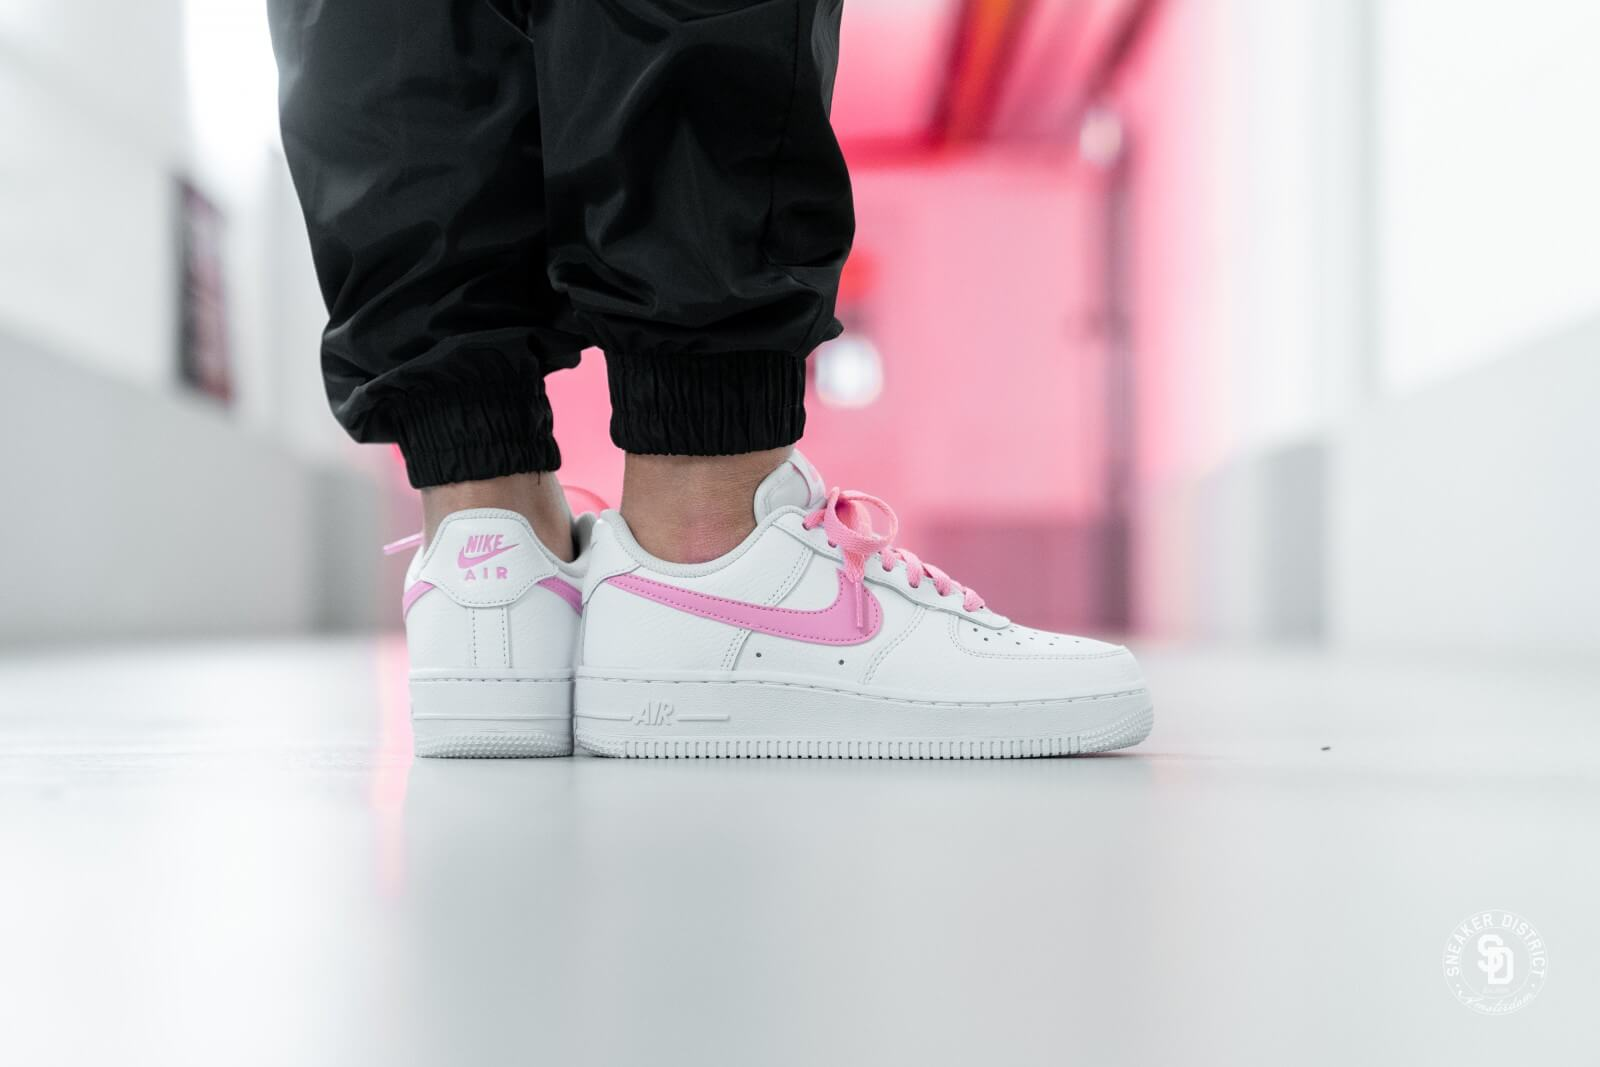 Buy Women's Air Force 1 Essential WhitePsychic Pink BV1980 100